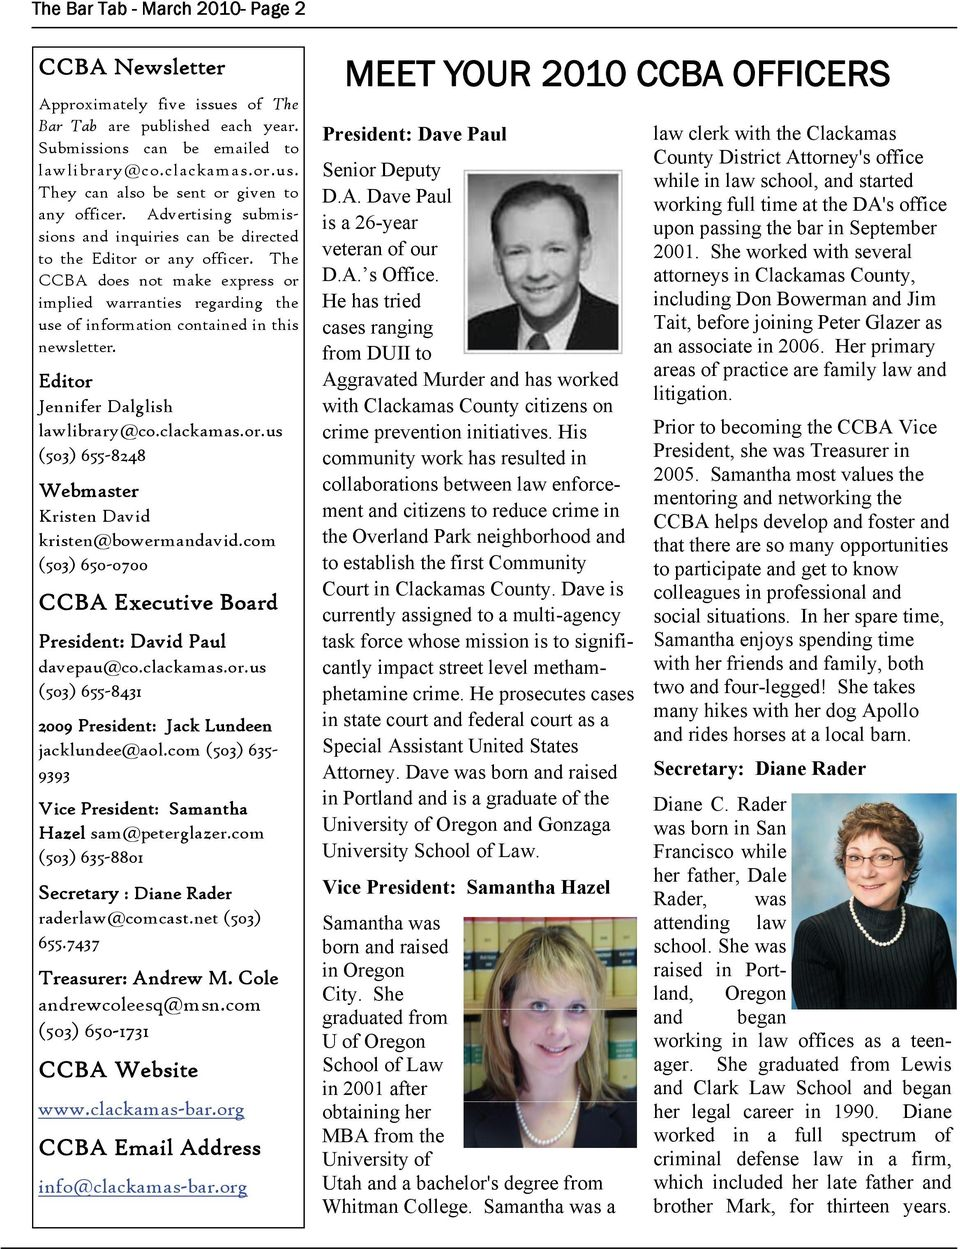 The CCBA does not make express or implied warranties regarding the use of information contained in this newsletter. Editor Jennifer Dalglish lawlibrary@co.clackamas.or.us (503) 655-8248 Webmaster Kristen David kristen@bowermandavid.